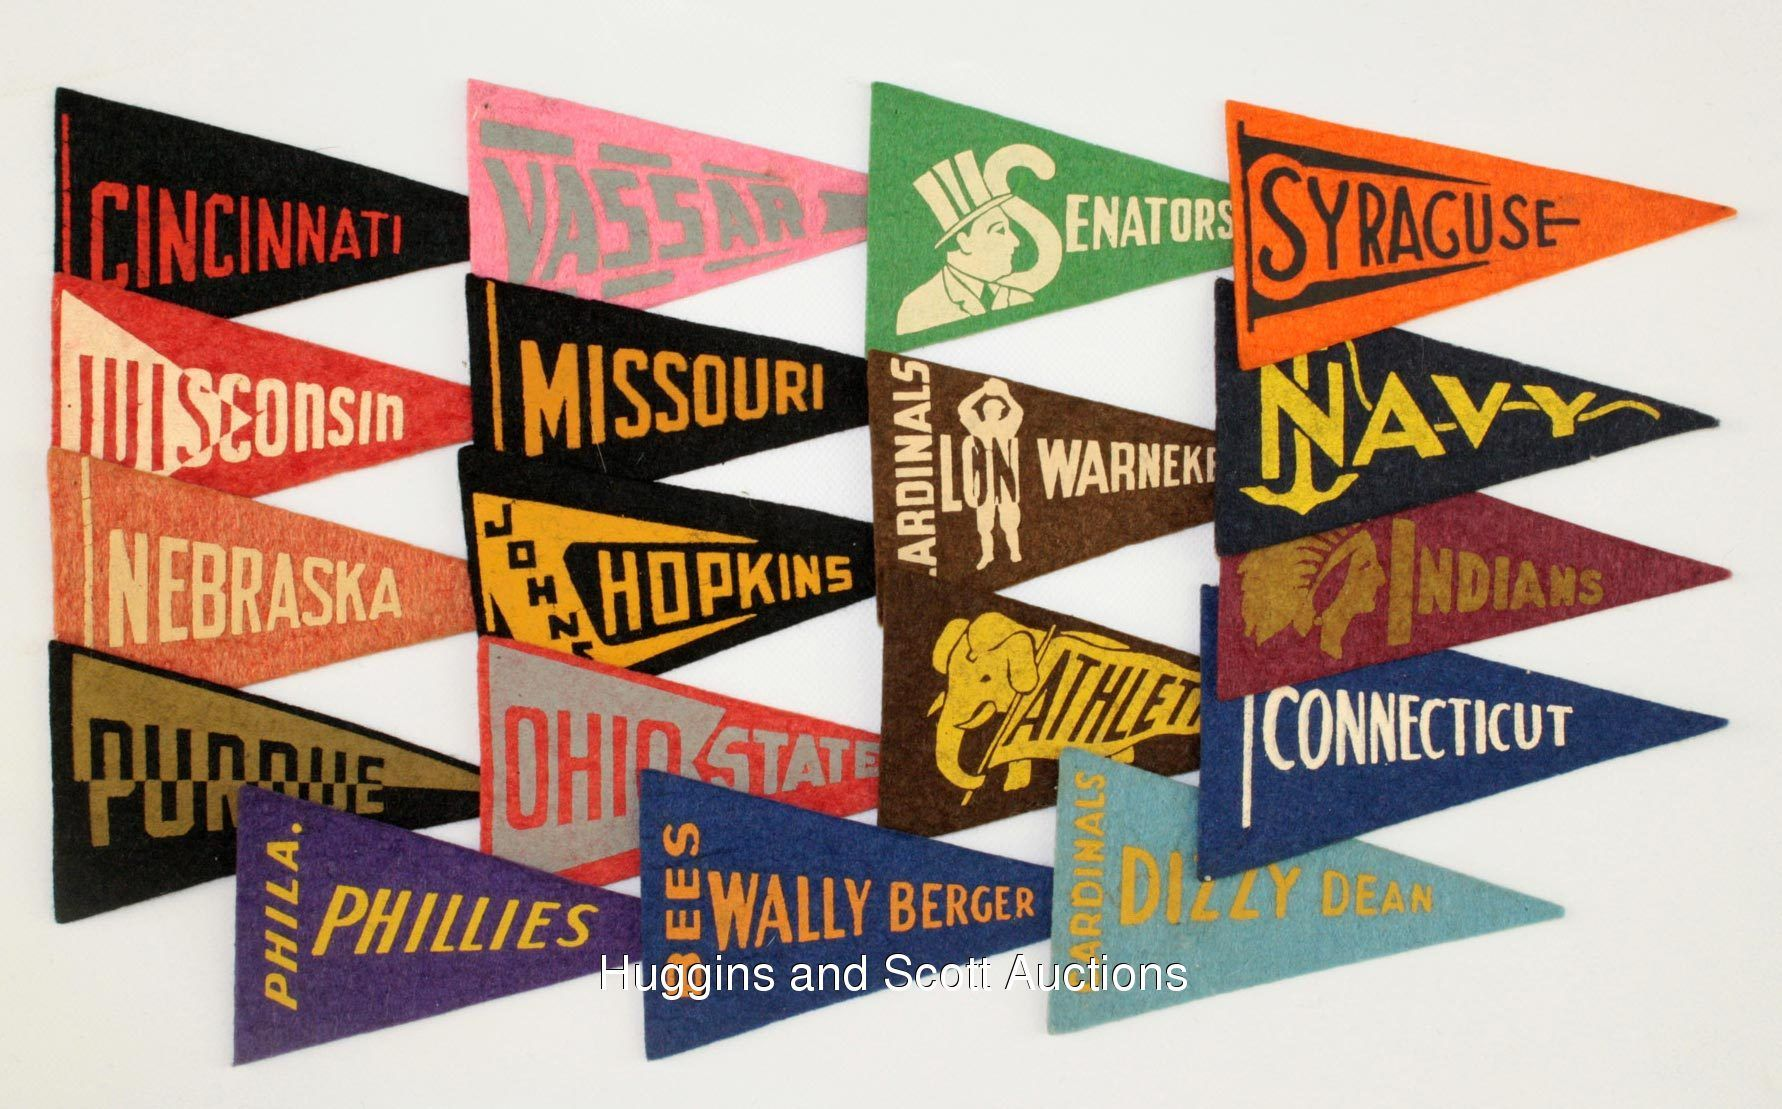 College Flags /& Banners Co Yale Pennant Full Size Felt